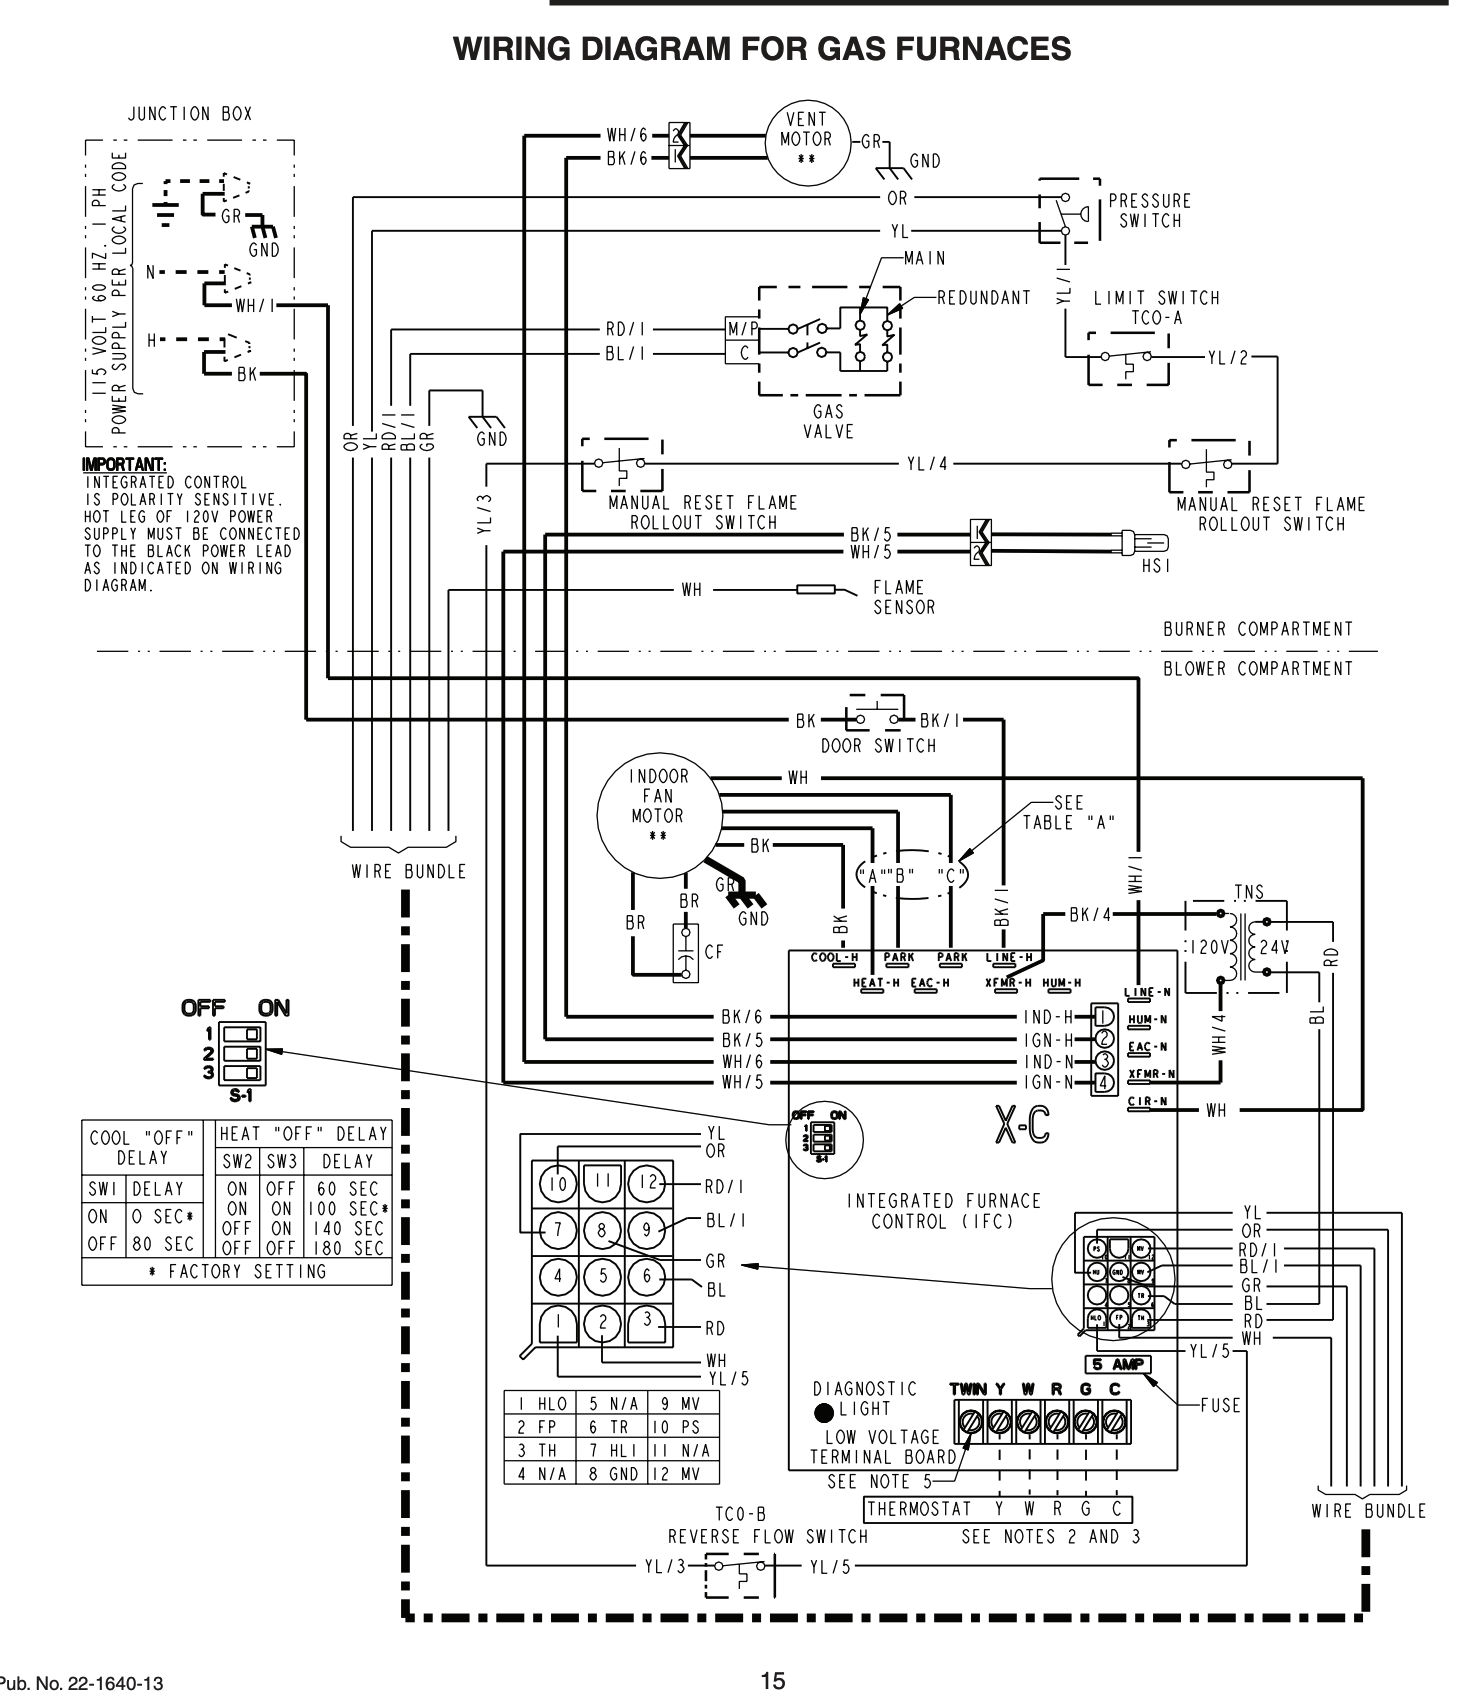 tempstar ac unit wiring diagram basic electronics wiring diagram ICP Heat Pump Wiring Diagram tempstar ac unit wiring diagram free download online wiring diagramtempstar ac unit wiring diagram free download